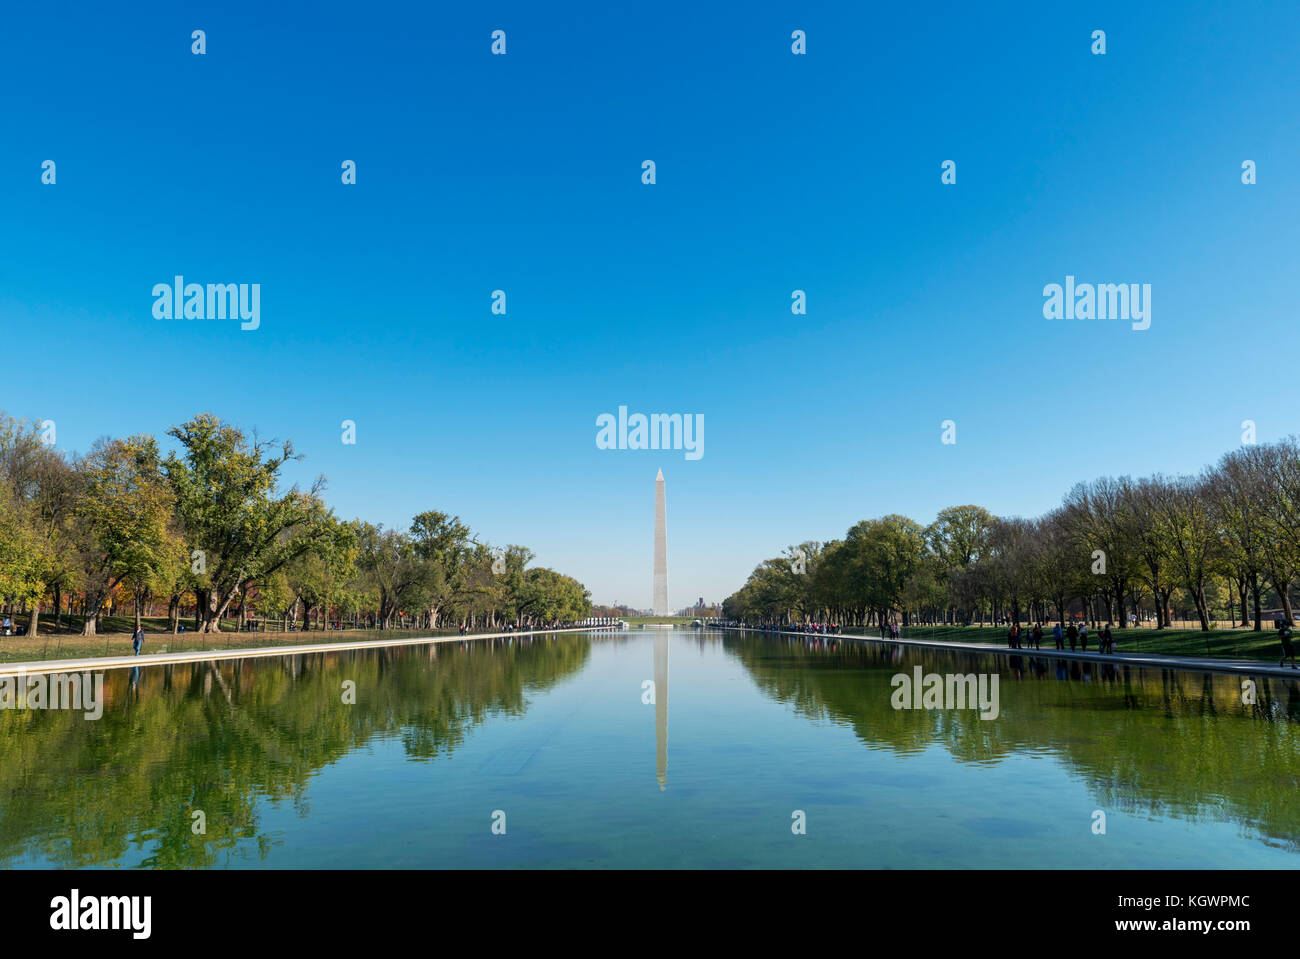 The Washington Monument and Reflecting Pool from the the Lincoln Memorial, Washington DC, USA - Stock Image